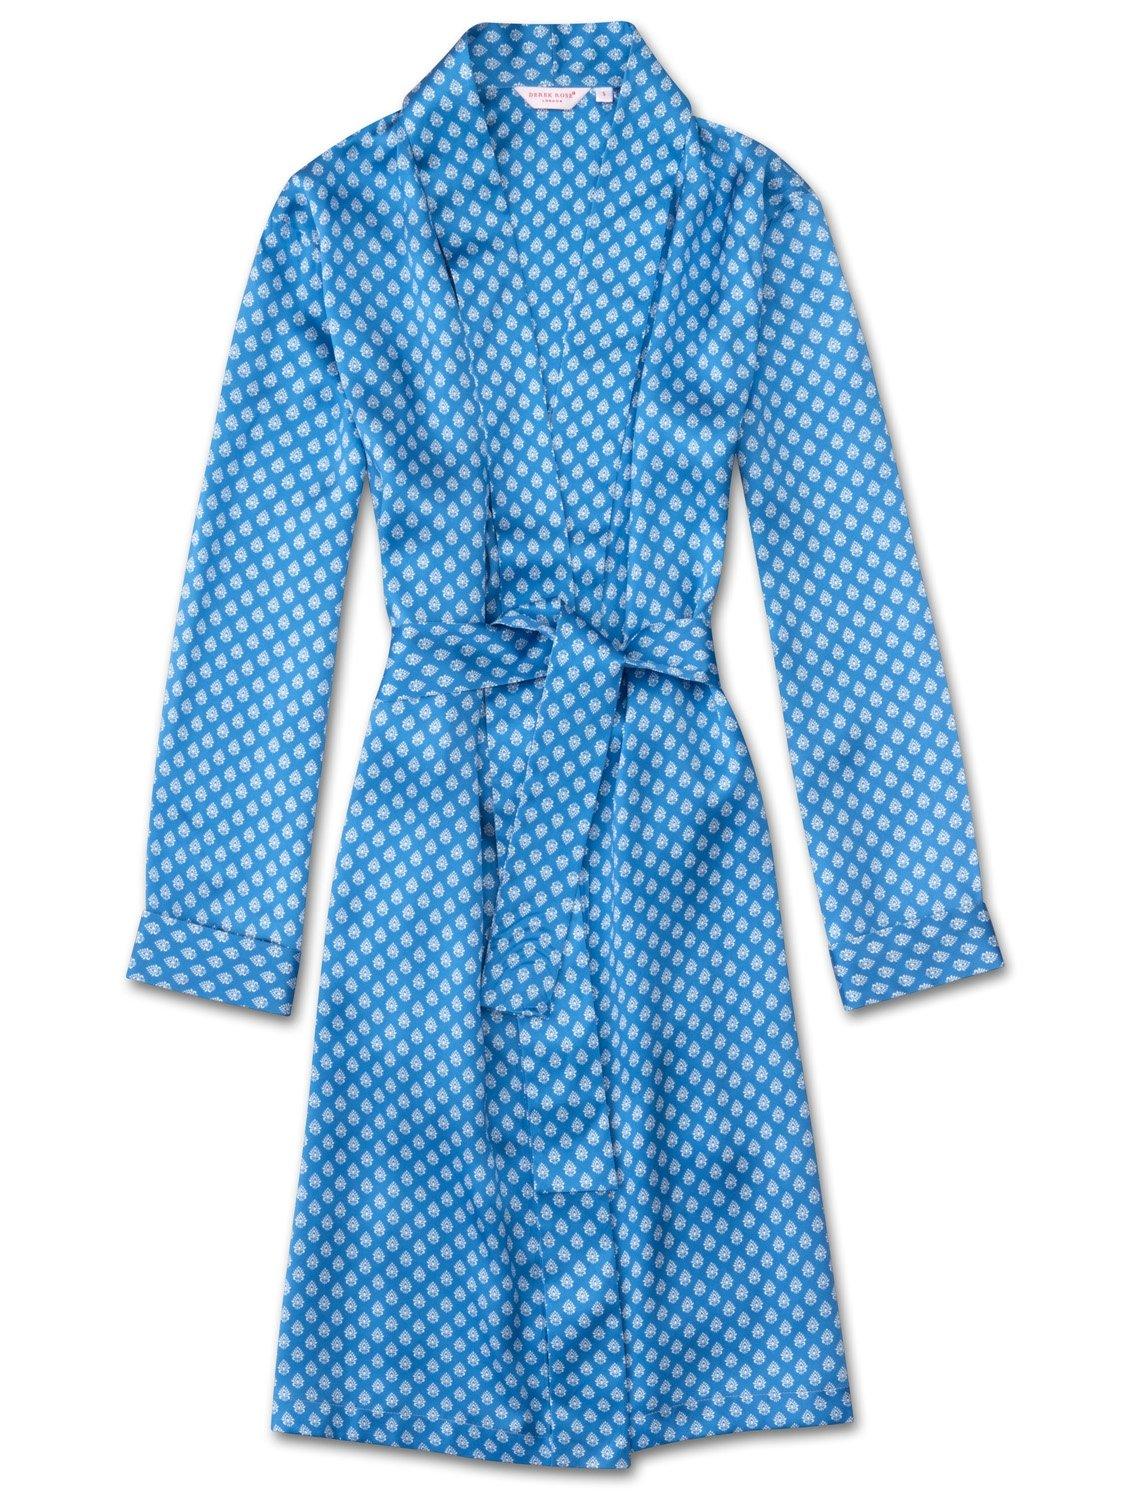 Women's Dressing Gown Brindisi 20 Pure Silk Satin Blue